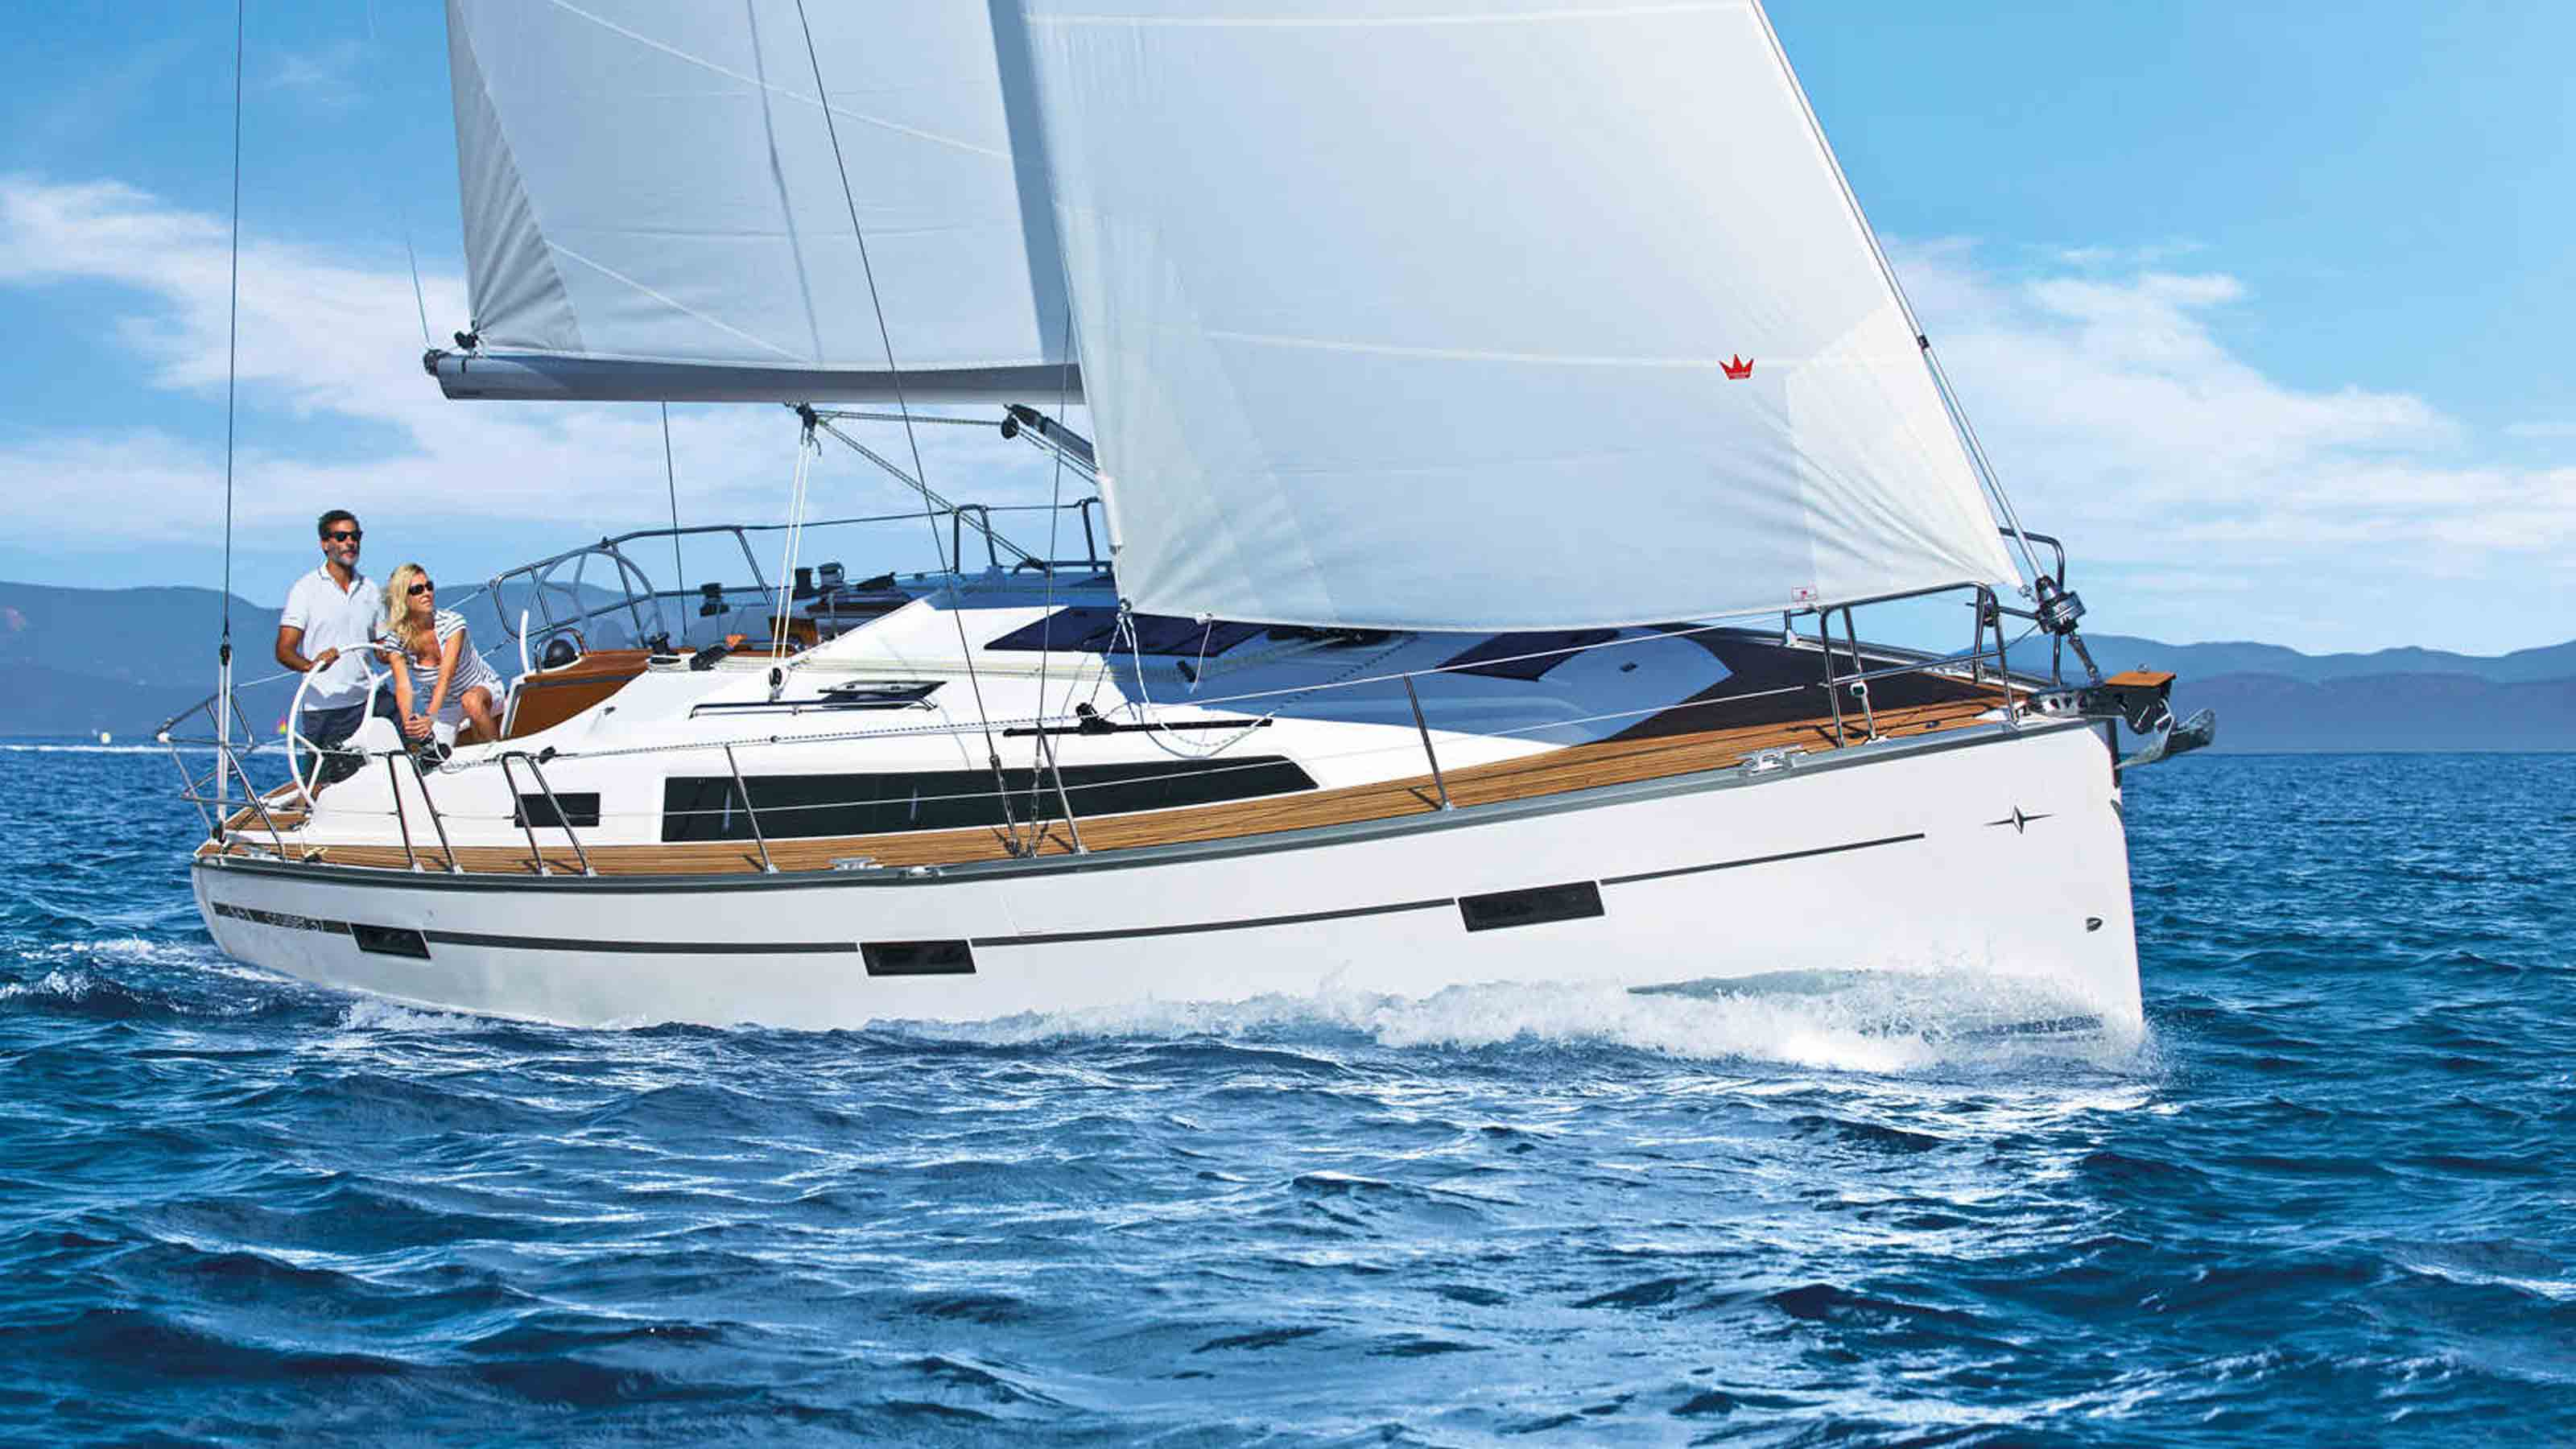 Vorschaubild Producer Image - Bavaria 37 Cruiser - Nemenia